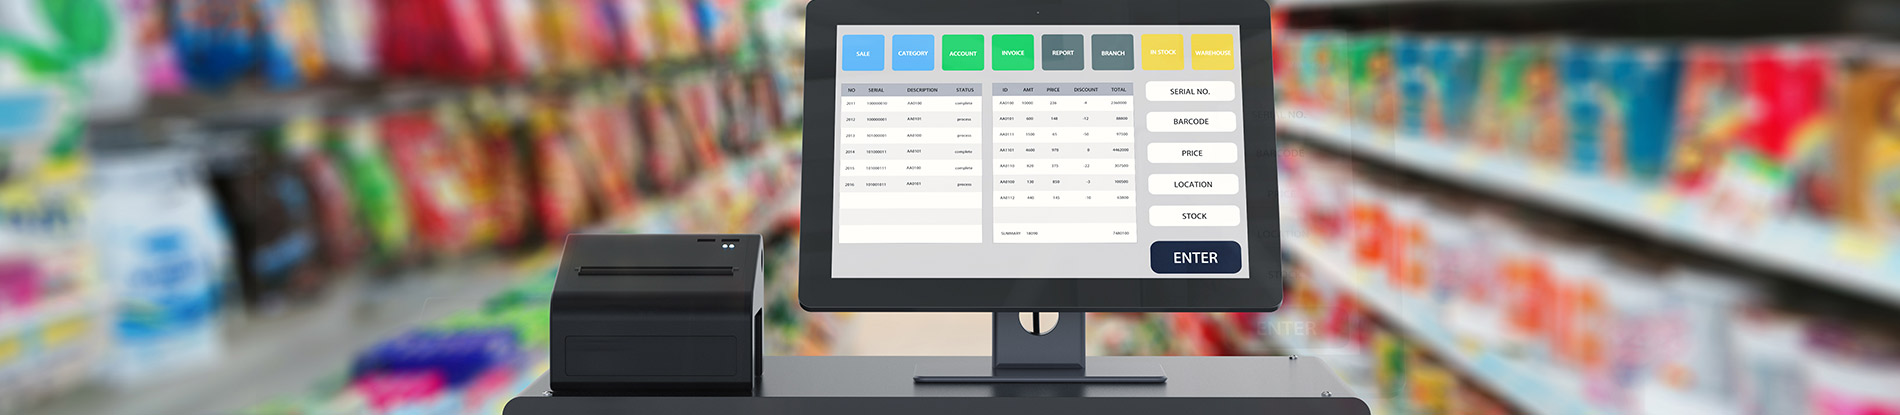 Analytics for Convenience Stores| C Store Analytics | Manthan